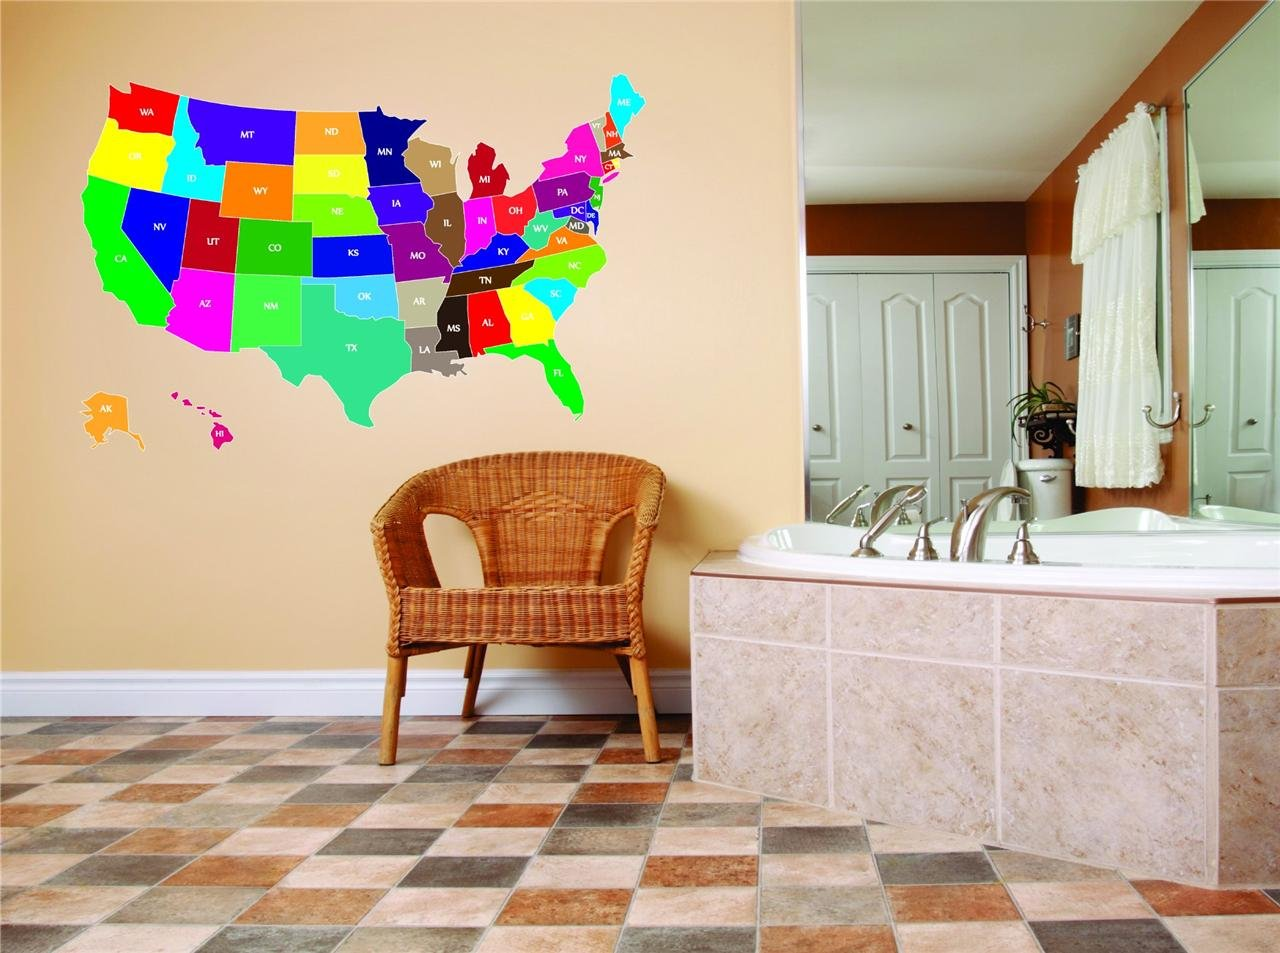 United States Map Of All 52 States USA North America Kids Boy Girl Bedroom Playroom School Vinyl Wall Decal Home Decor Graphic Design Image Picture Art Mural Peel & Stick Sticker 15x10